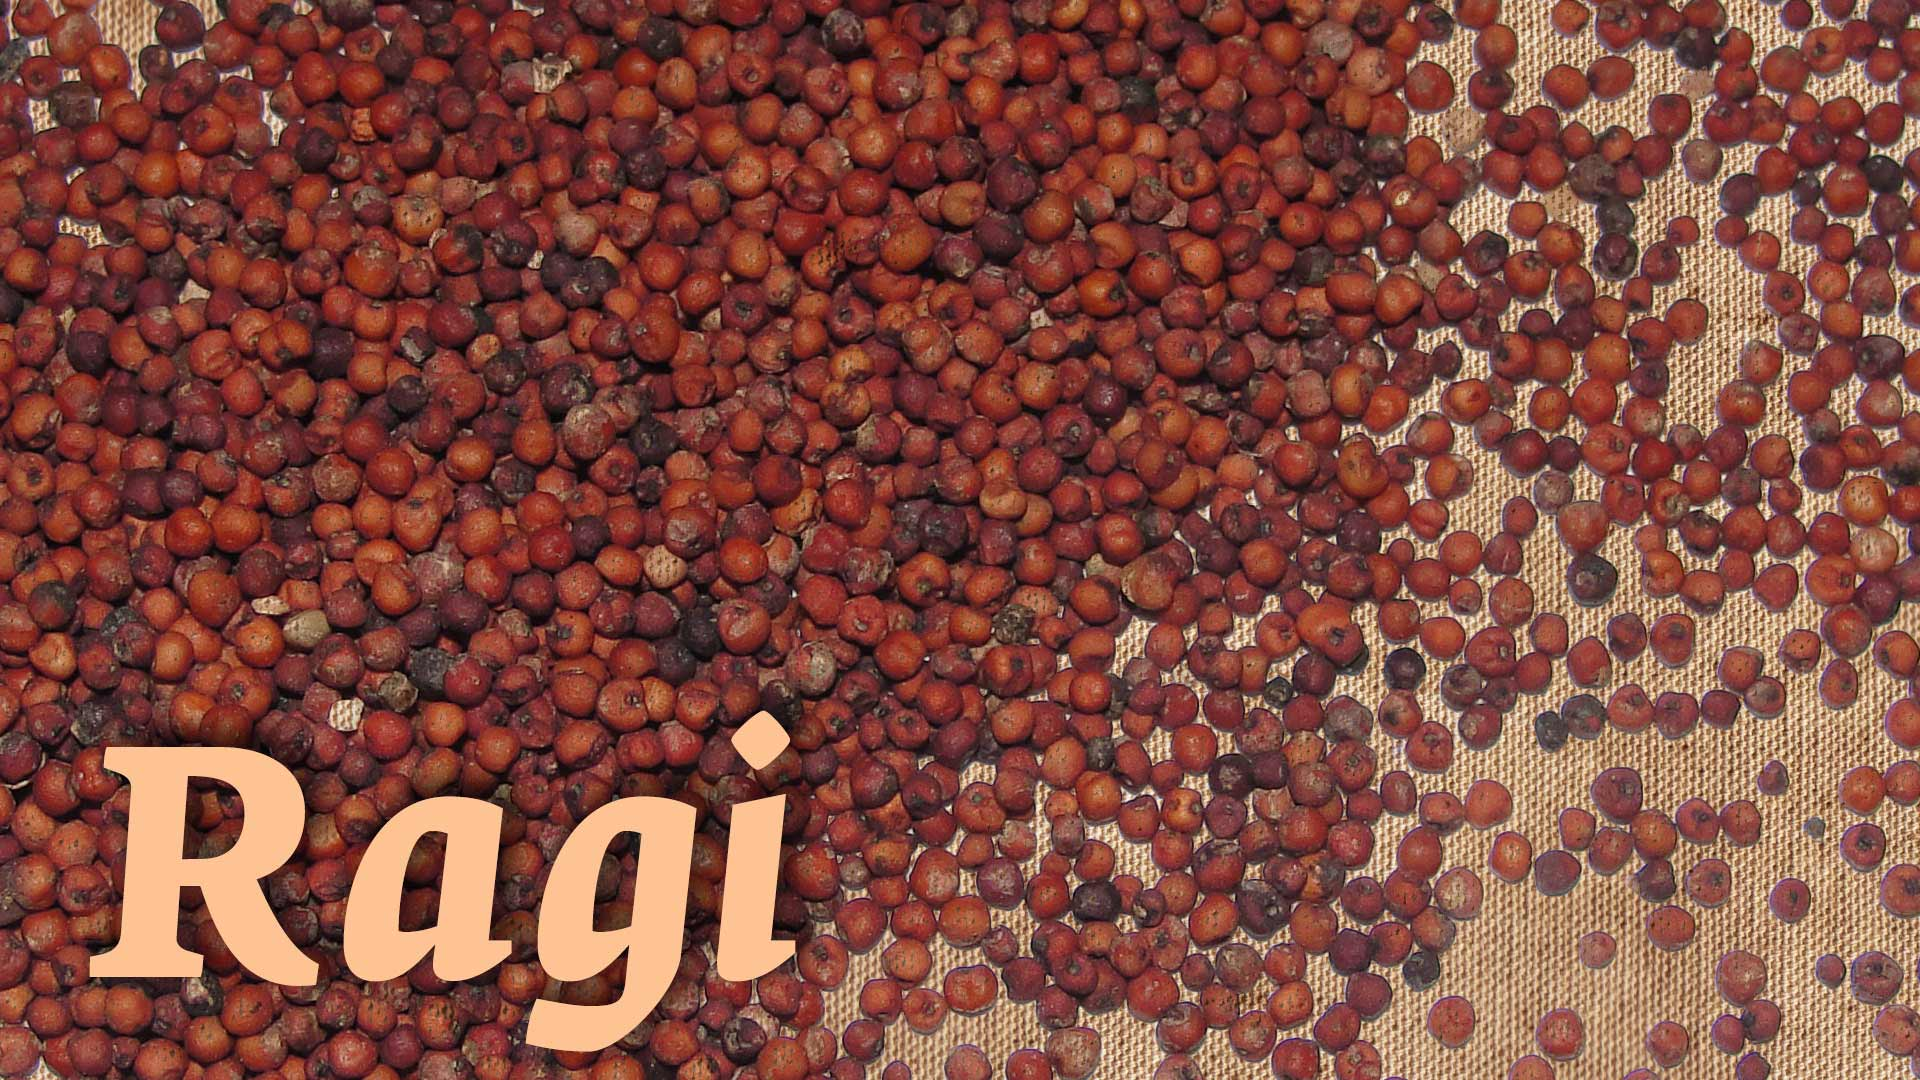 Healthy benefits of eating Ragi on a daily basis